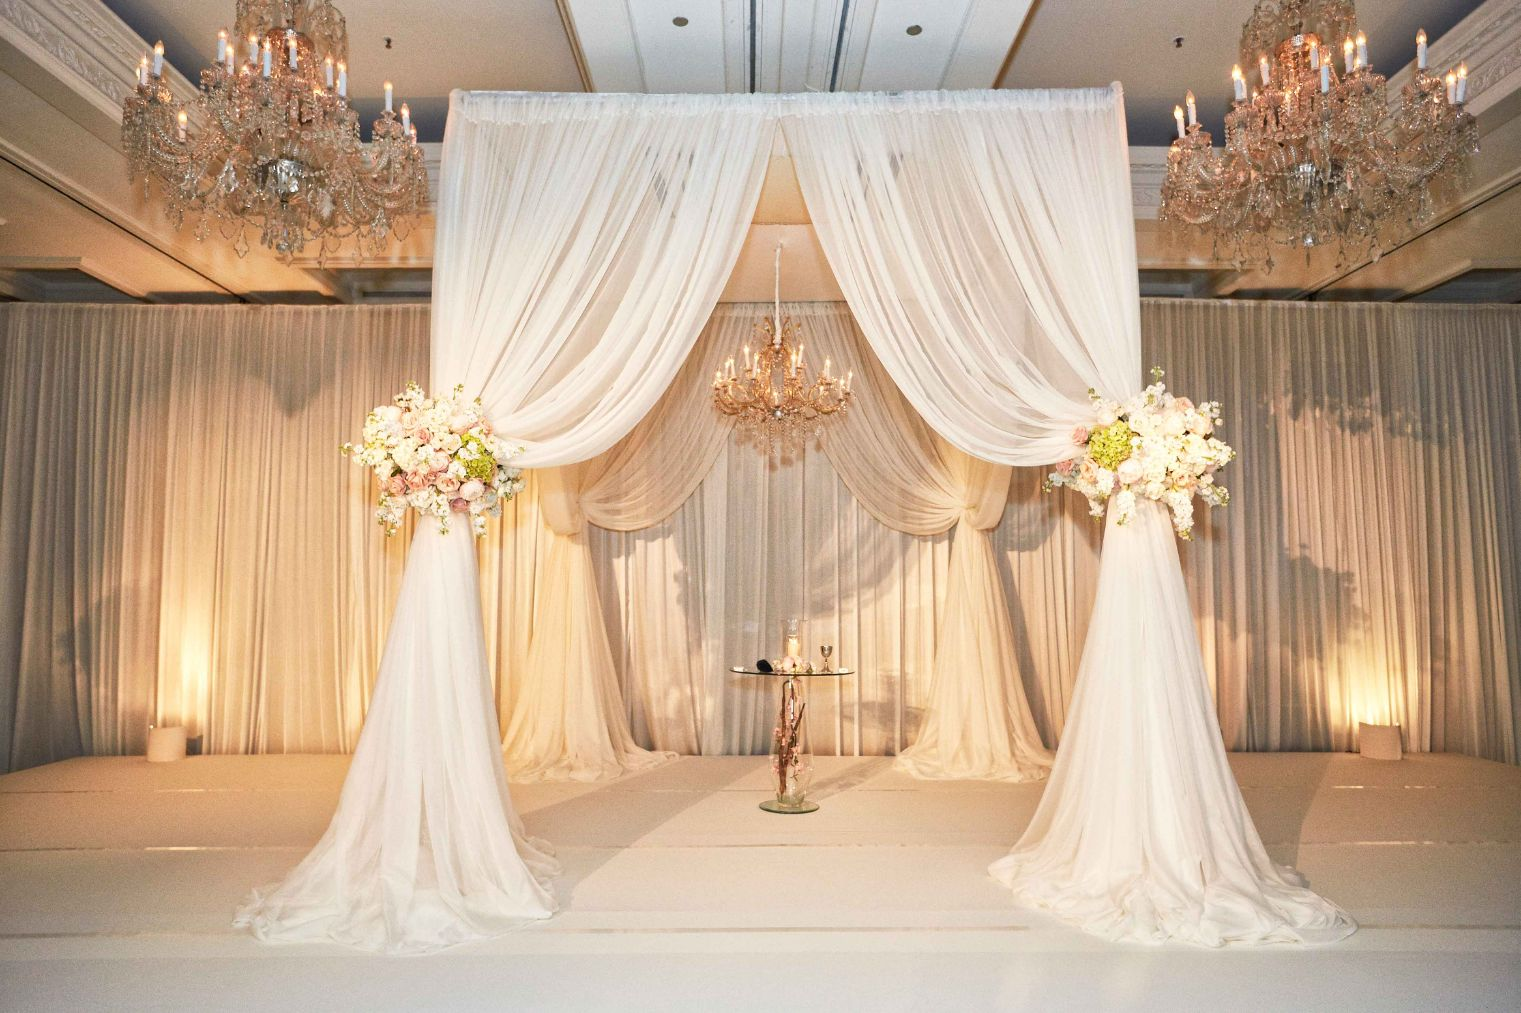 10x10 sqaure chuppah xclusive deejays winter springs florida wedding dj lighting photo booth entertainment